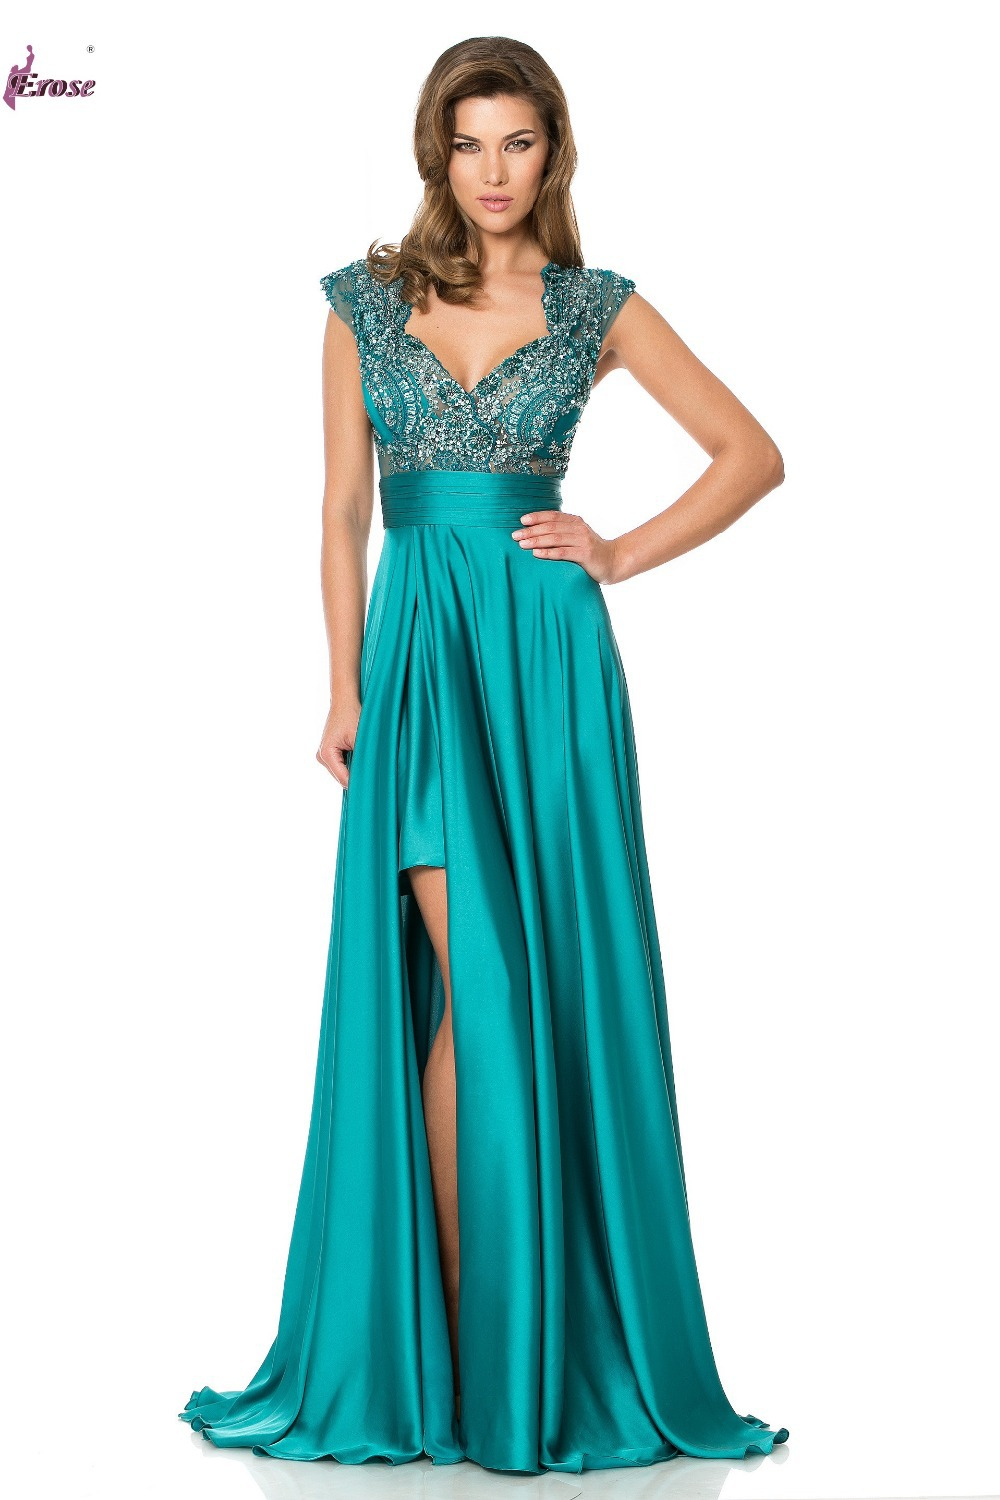 Wedding Teal Prom Dresses online get cheap teal short prom dresses aliexpress com alibaba ade 280 beaded appliques sweetheart high low back see through satin dress gown